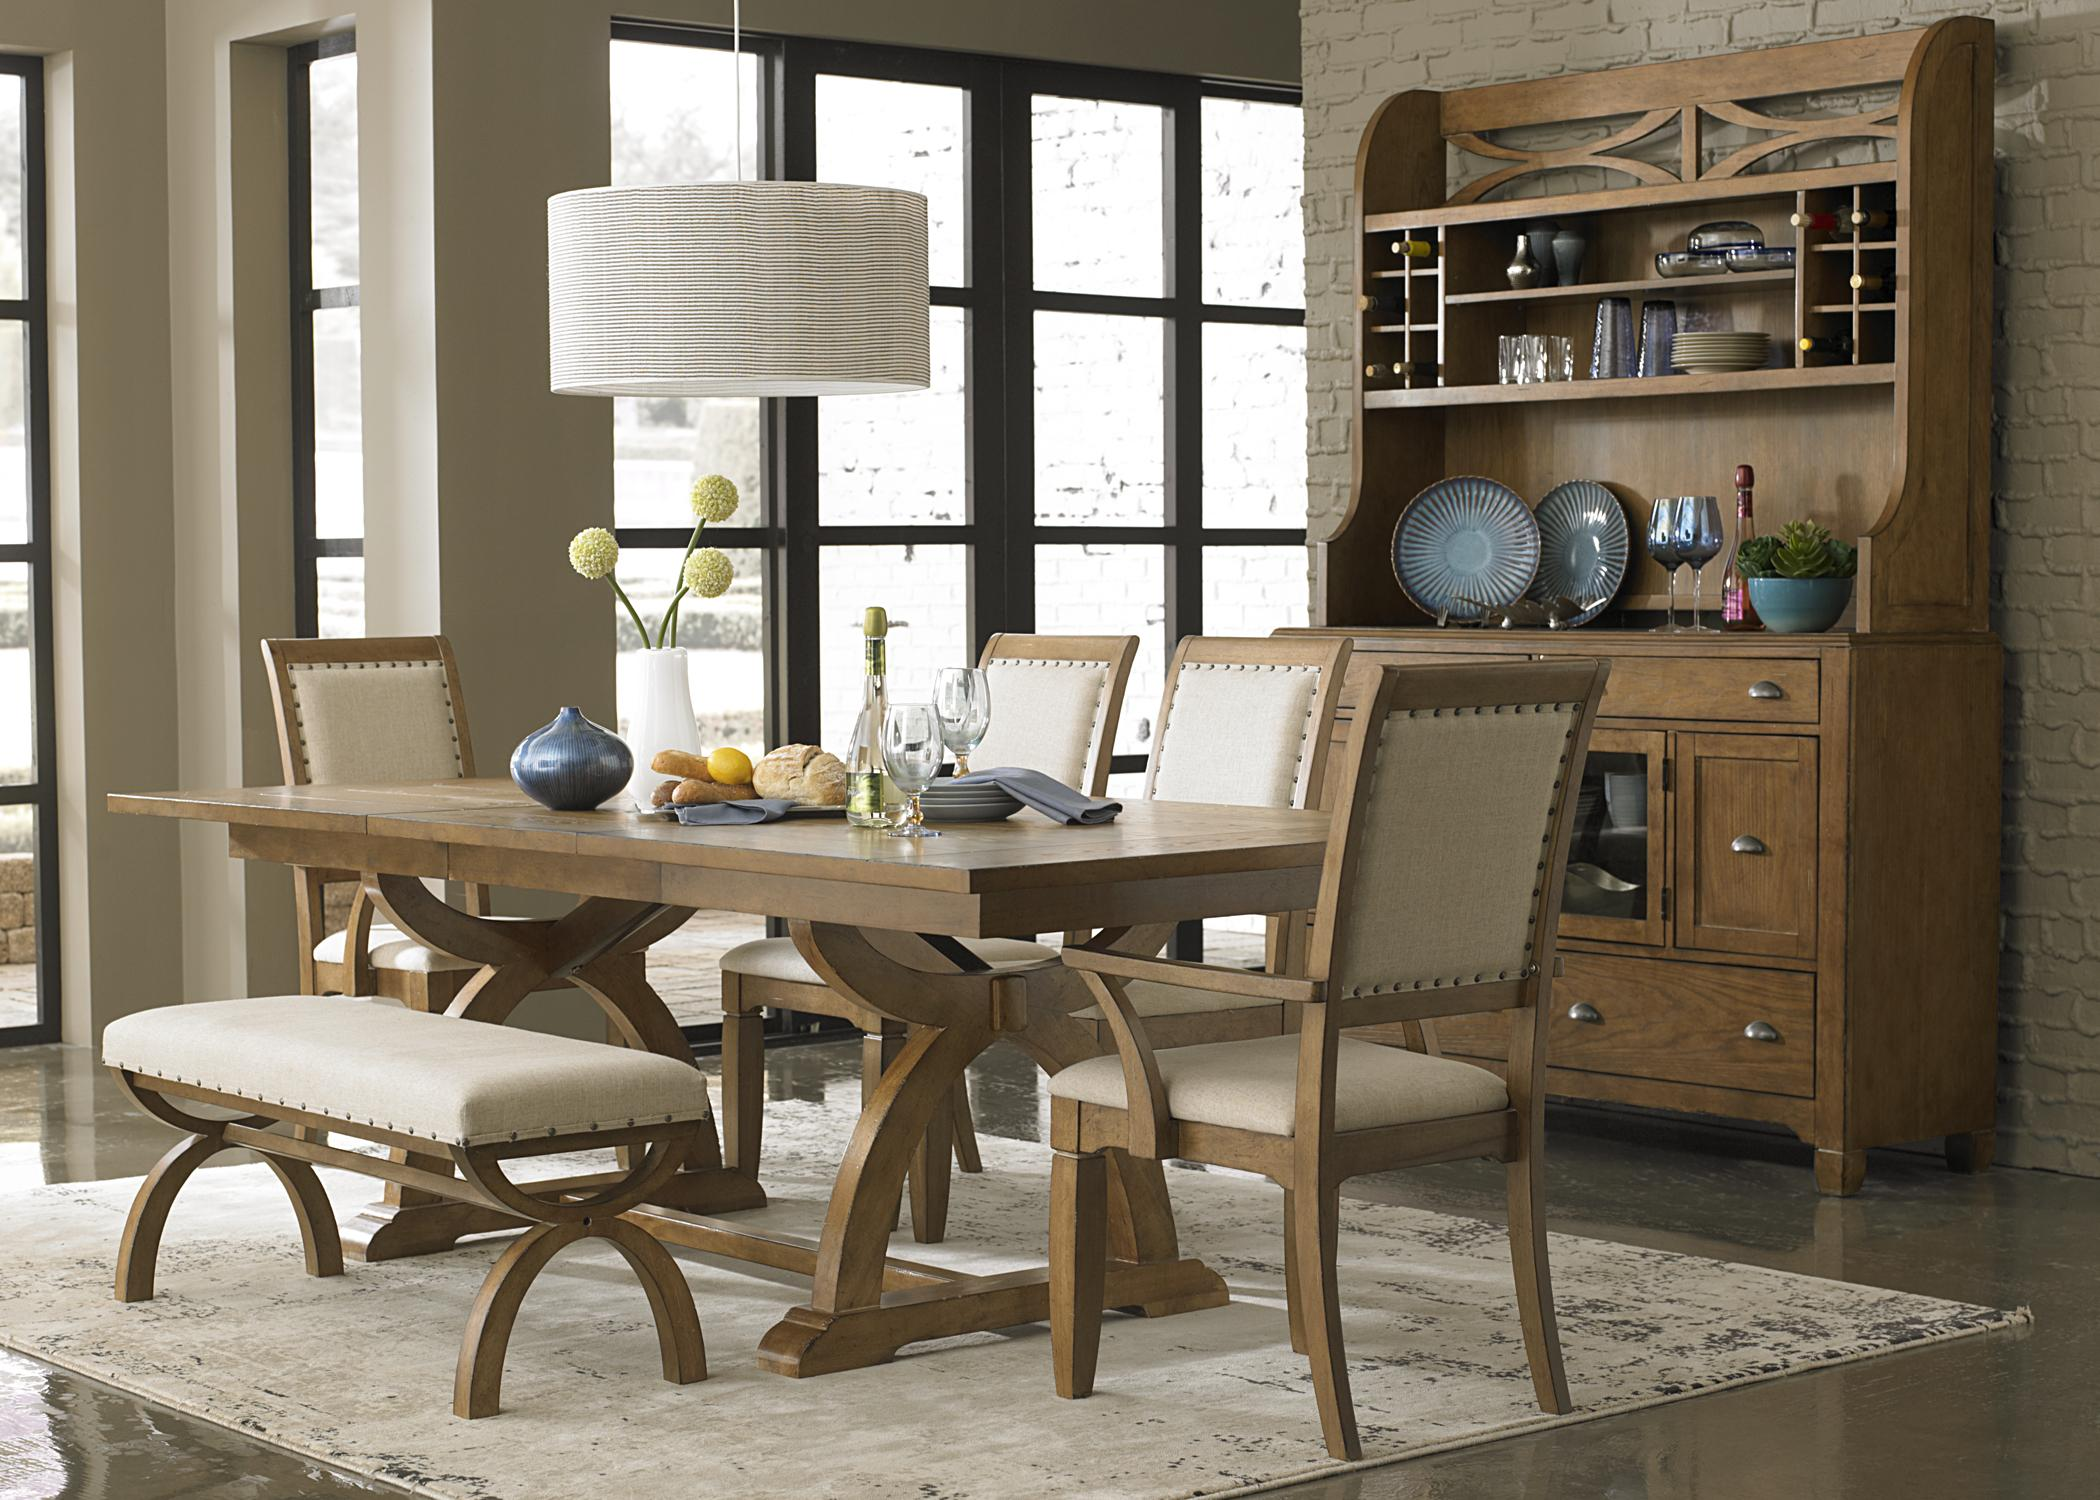 Rustic buffet table furniture - Hutch Buffet